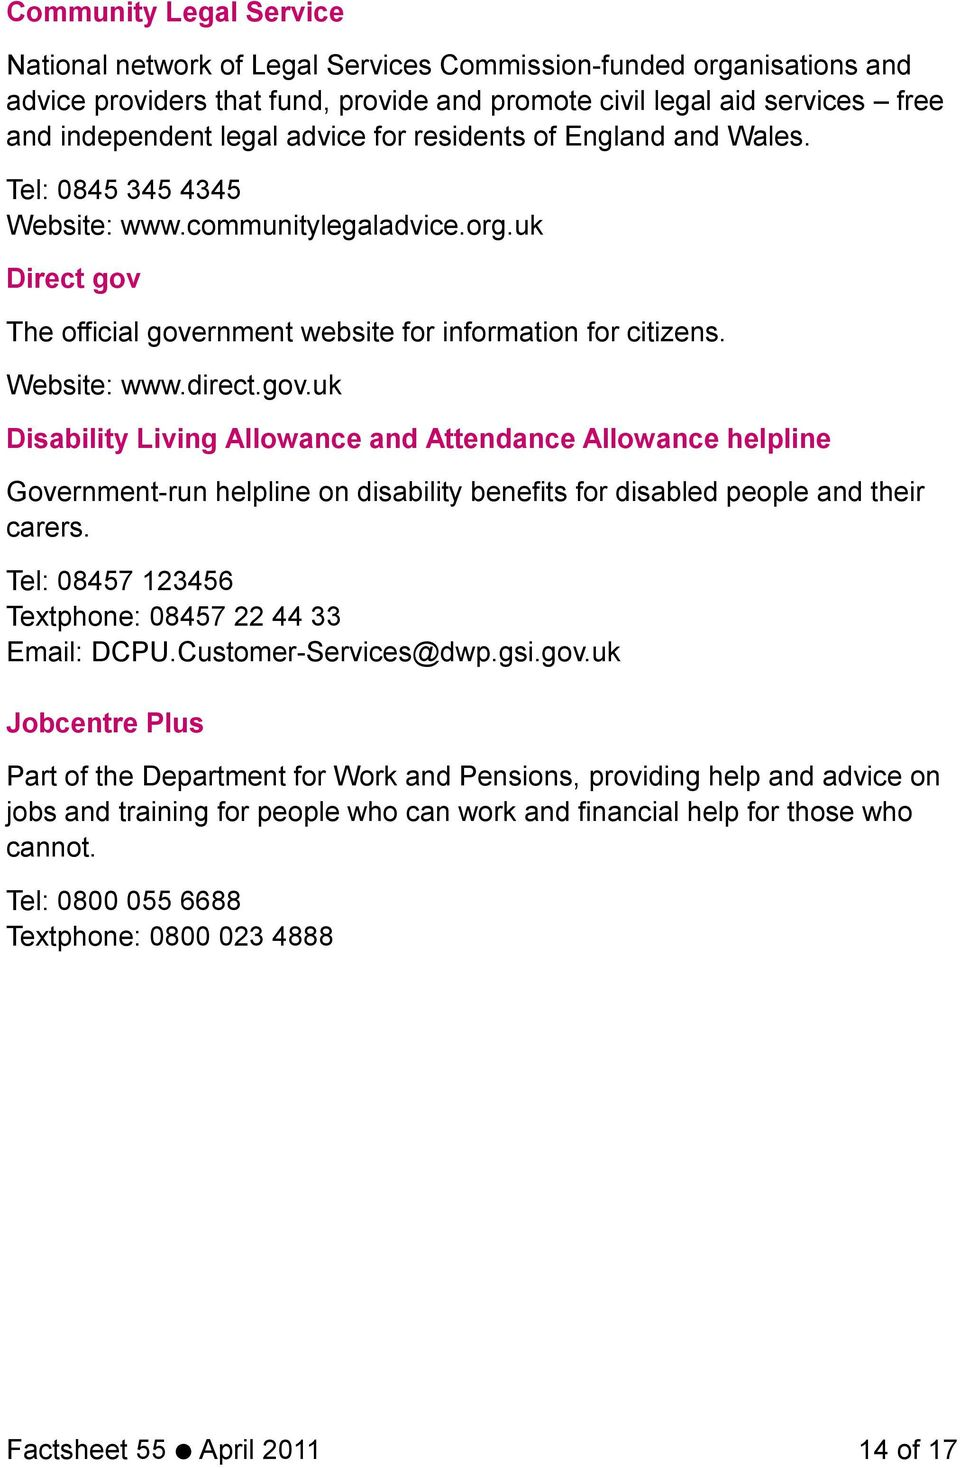 The official government website for information for citizens. Website: www.direct.gov.uk Disability Living Allowance and Attendance Allowance helpline Government-run helpline on disability benefits for disabled people and their carers.